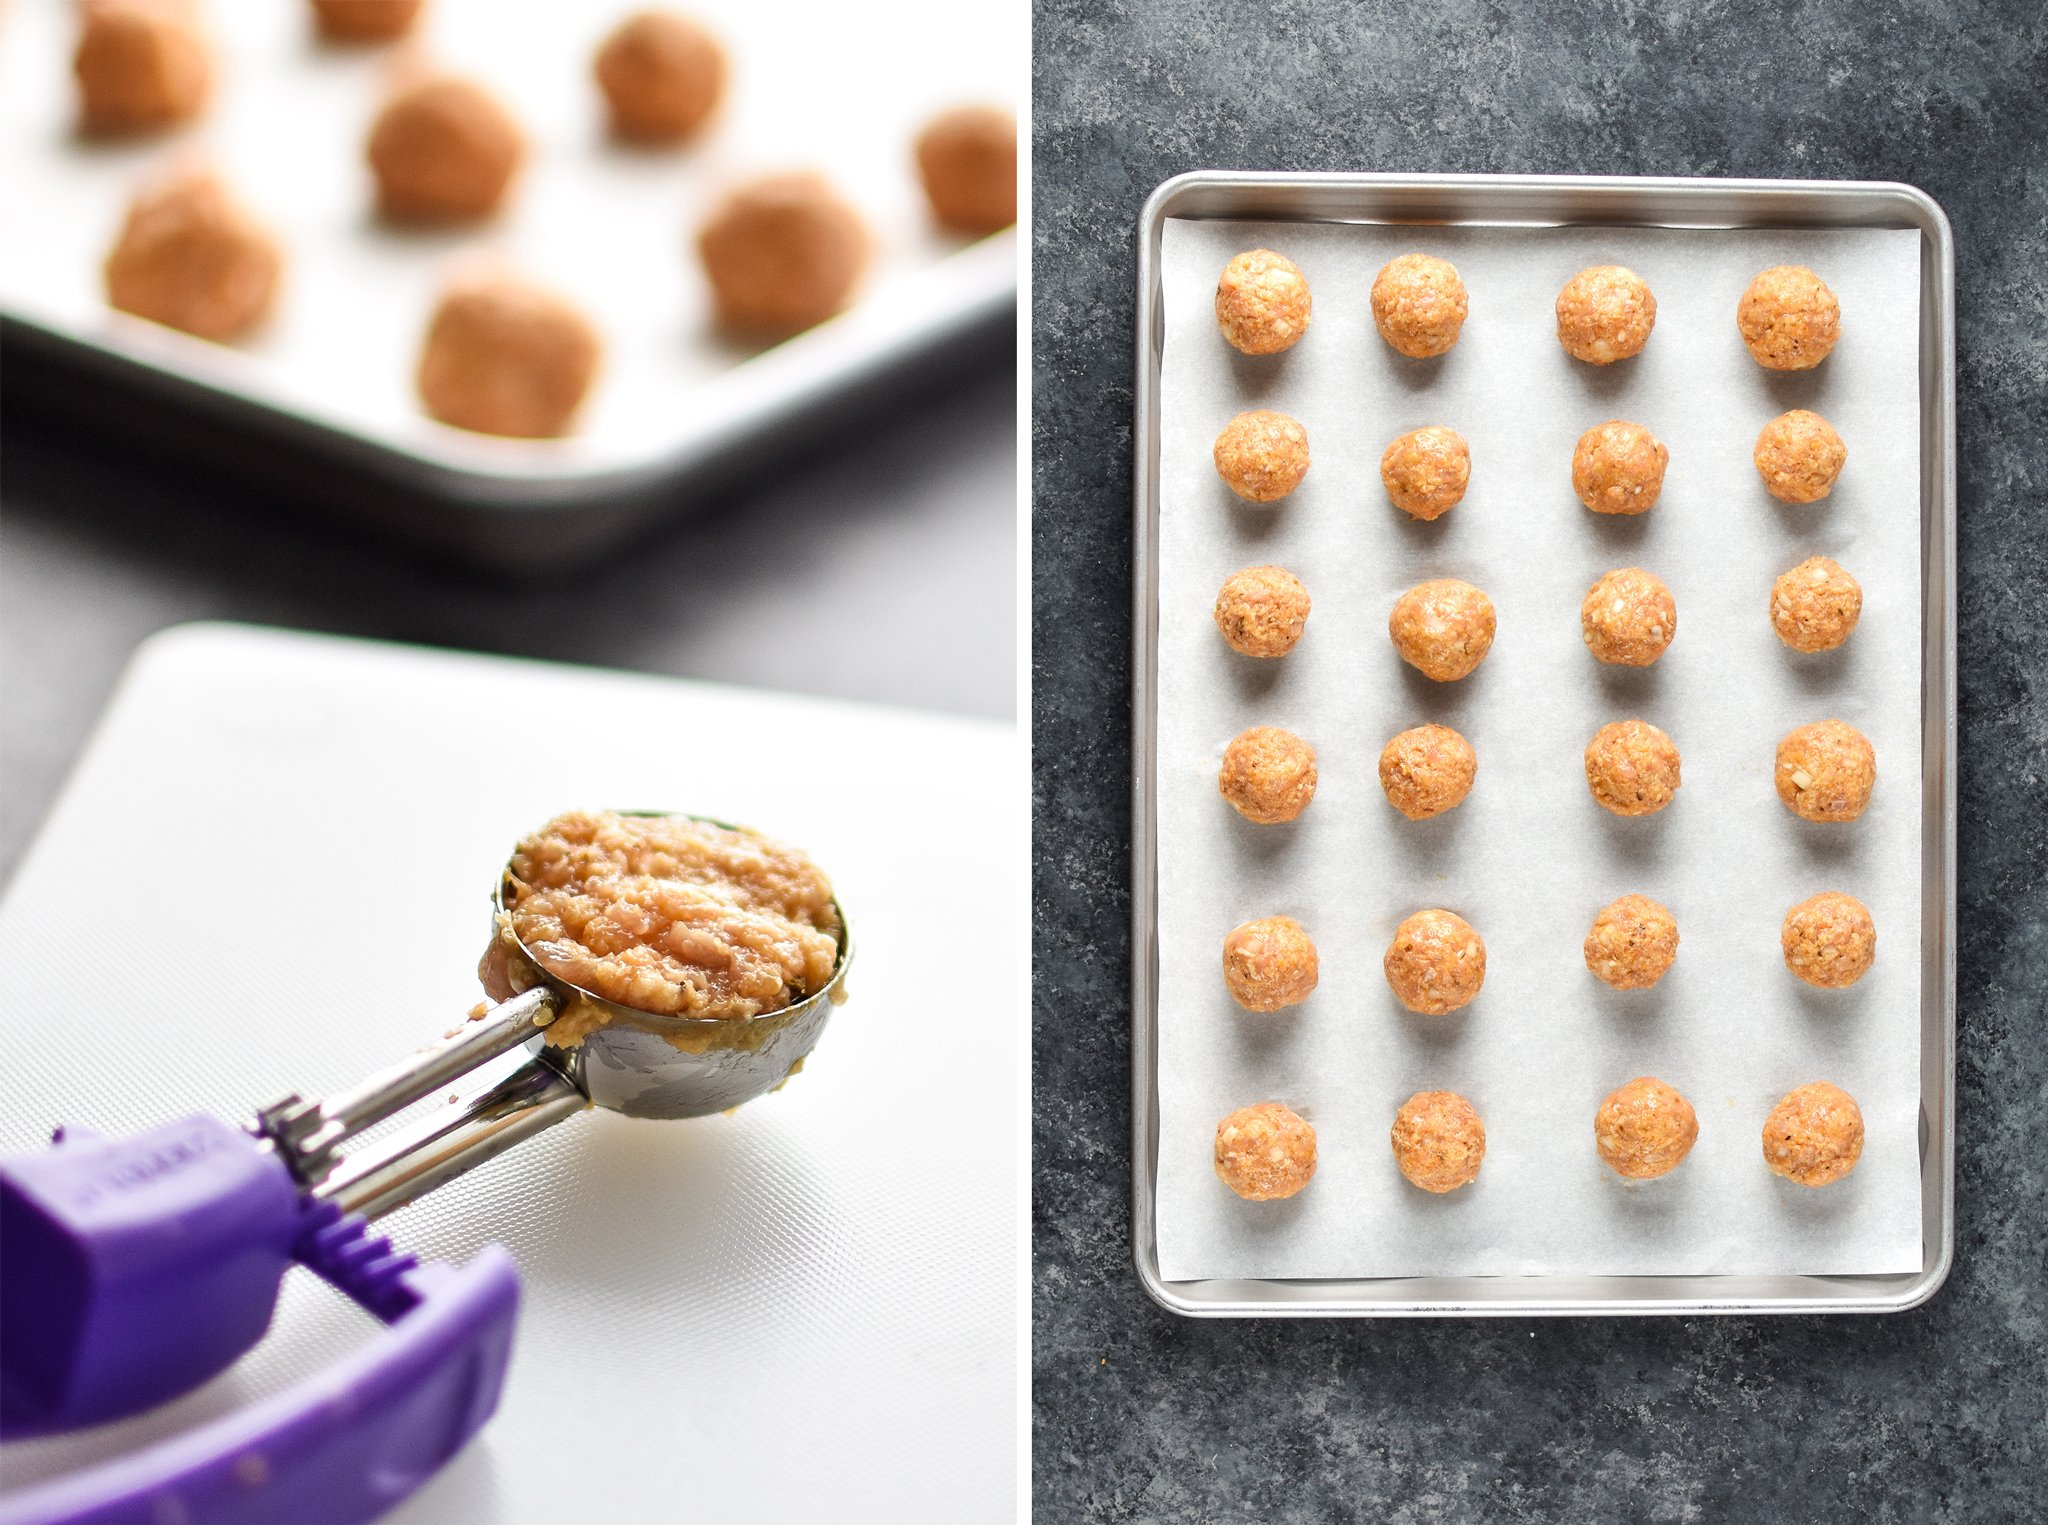 Scoops of raw meatball mixture and a sheet pan of meatballs ready to be cooked.